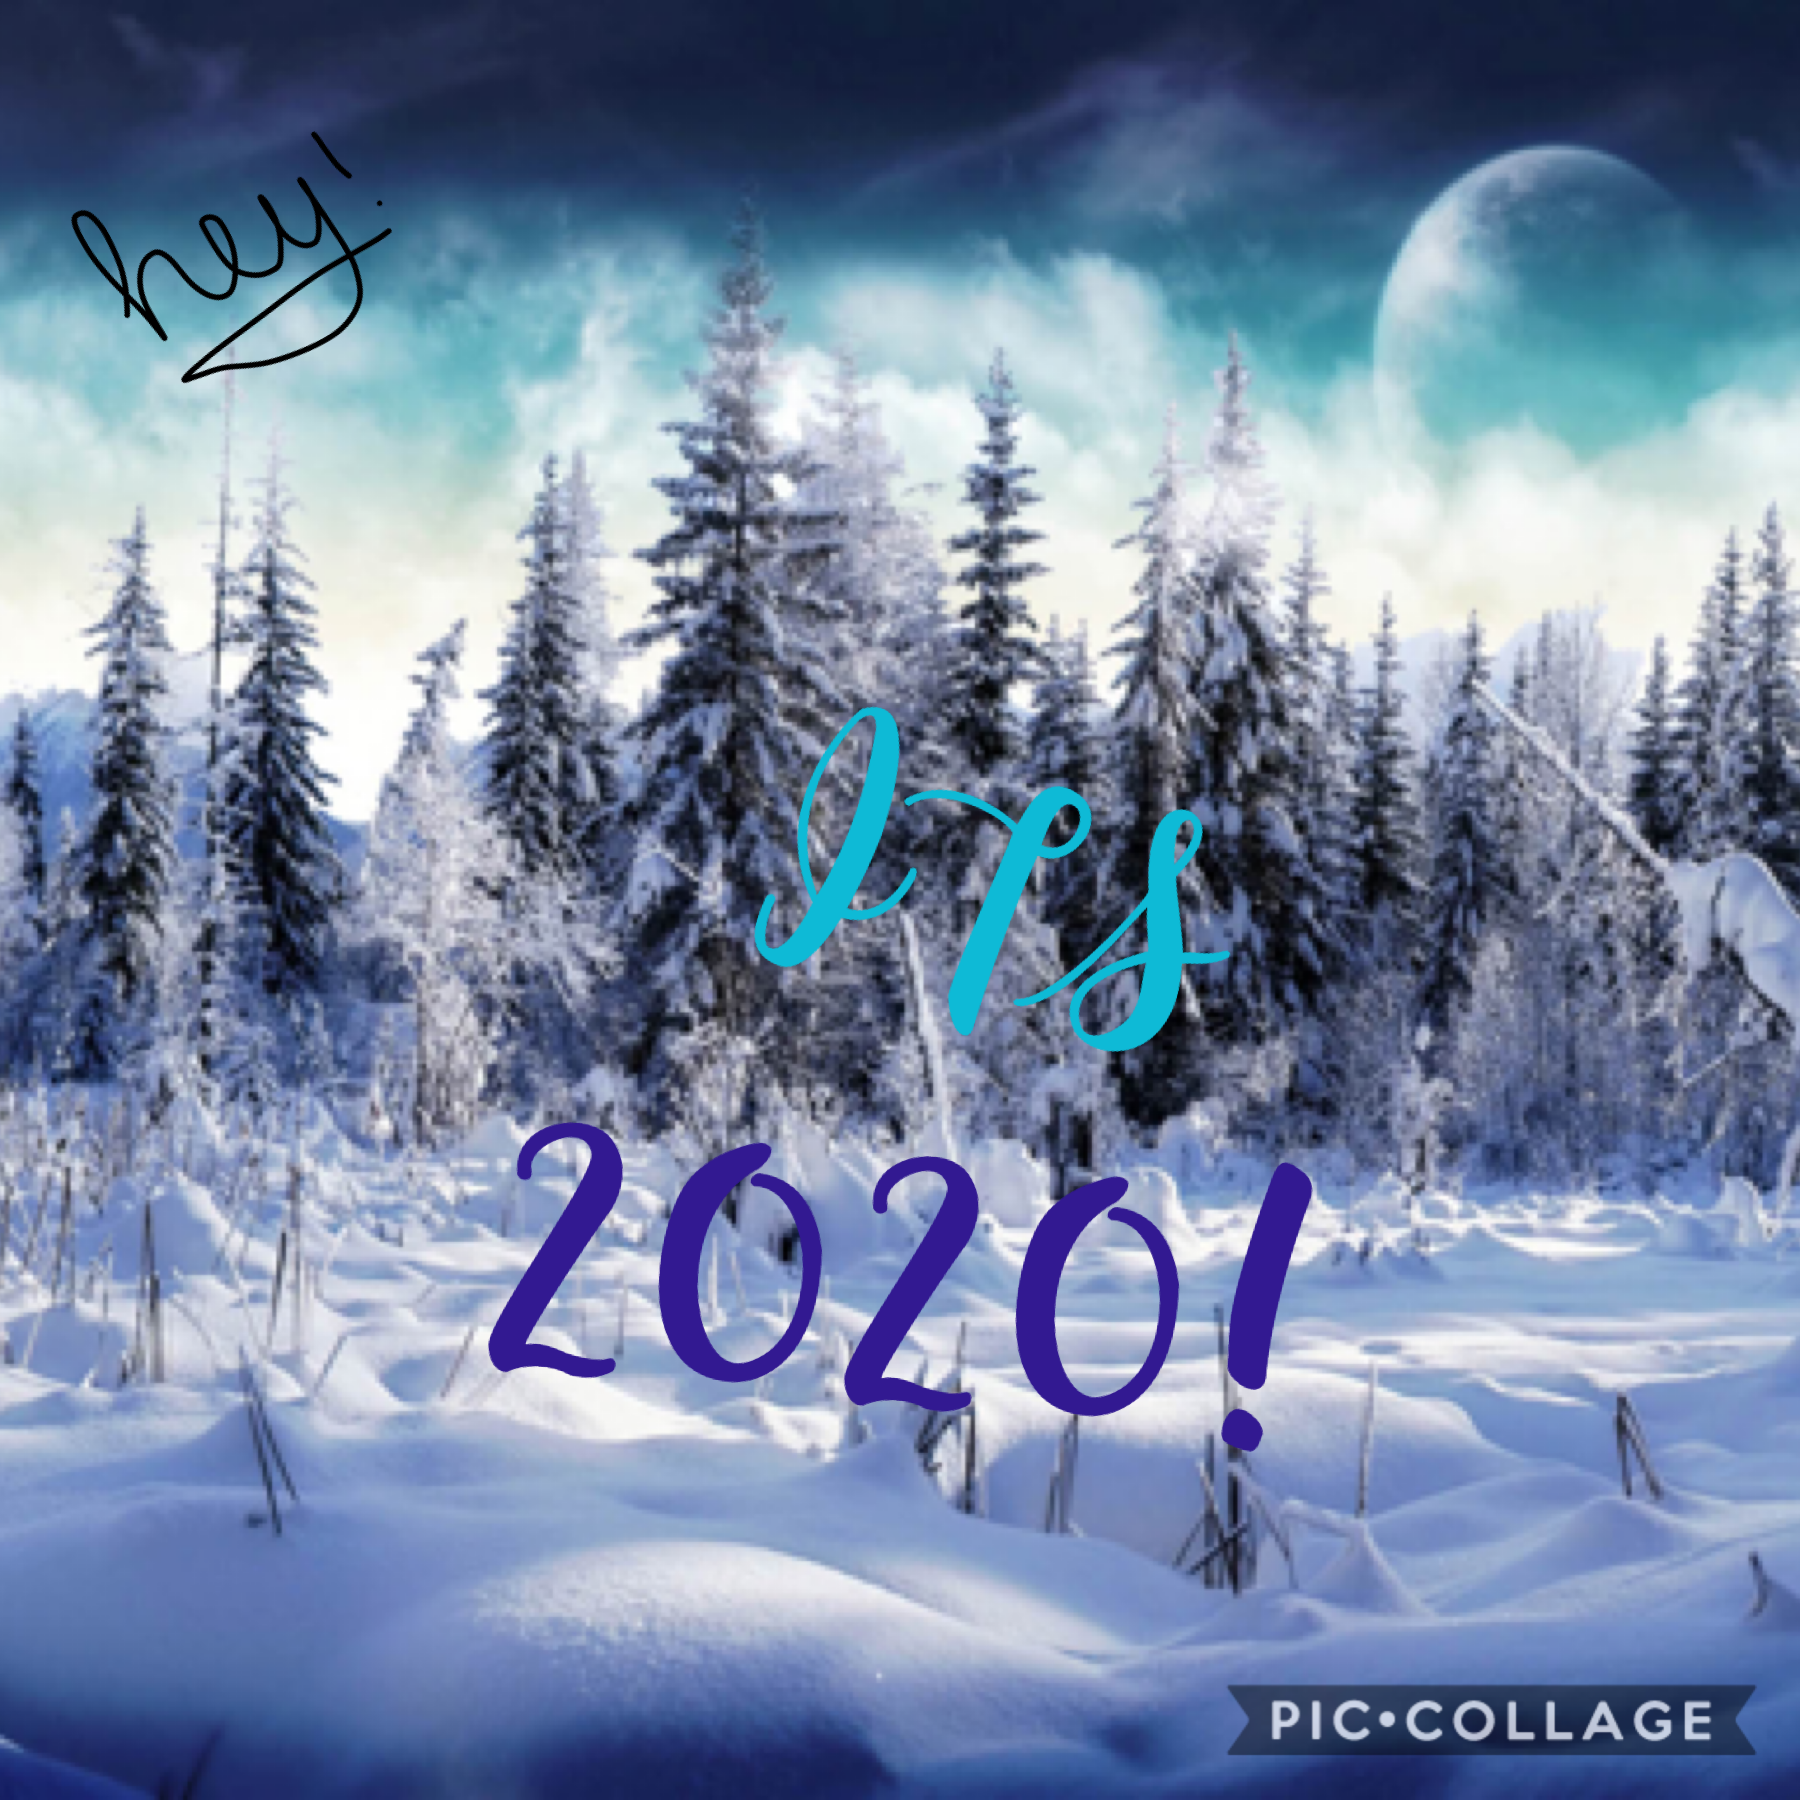 hey y'all i'm back sorry for being gone so long! HAPPY 2020!